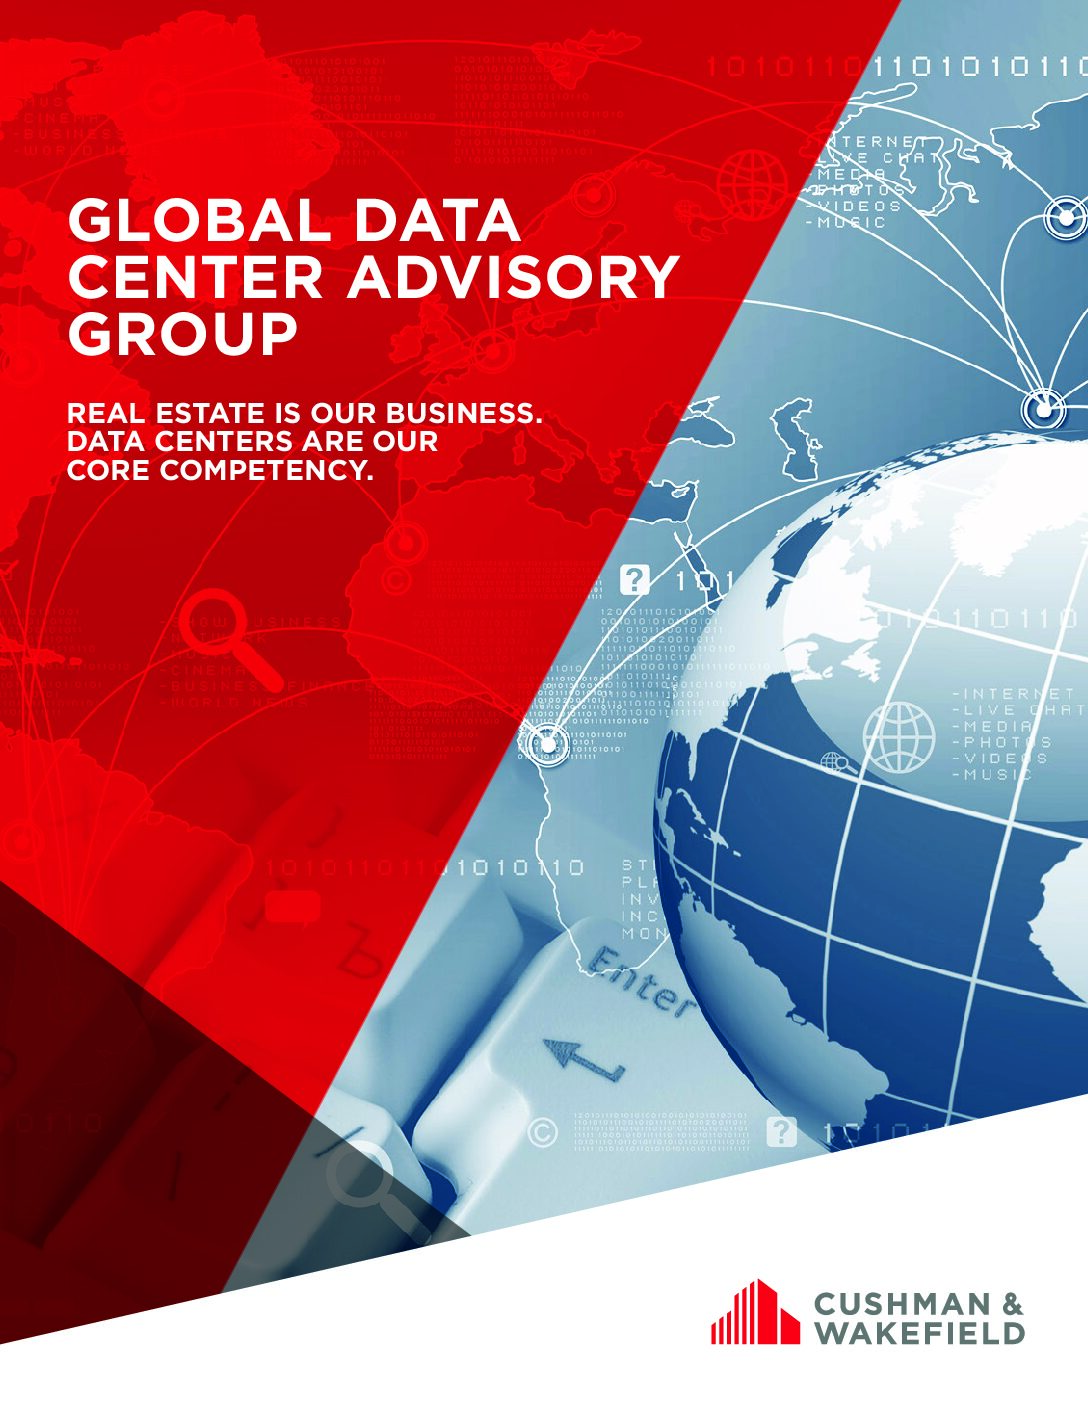 Global Data Center Advisory Group